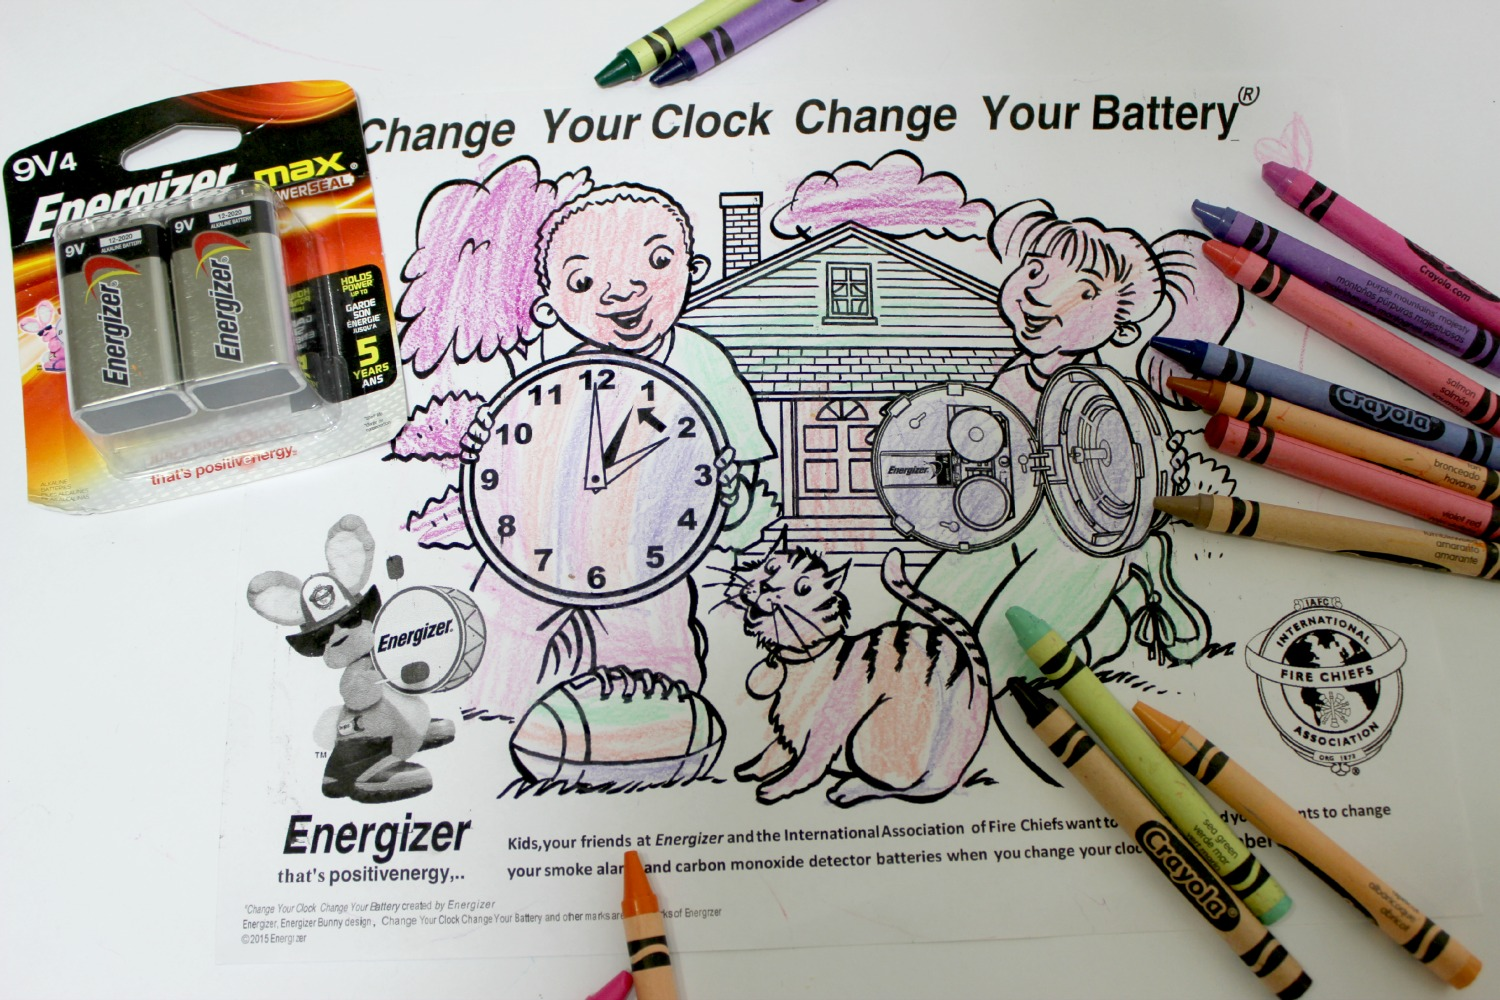 change-your-clock-change-your-battery.